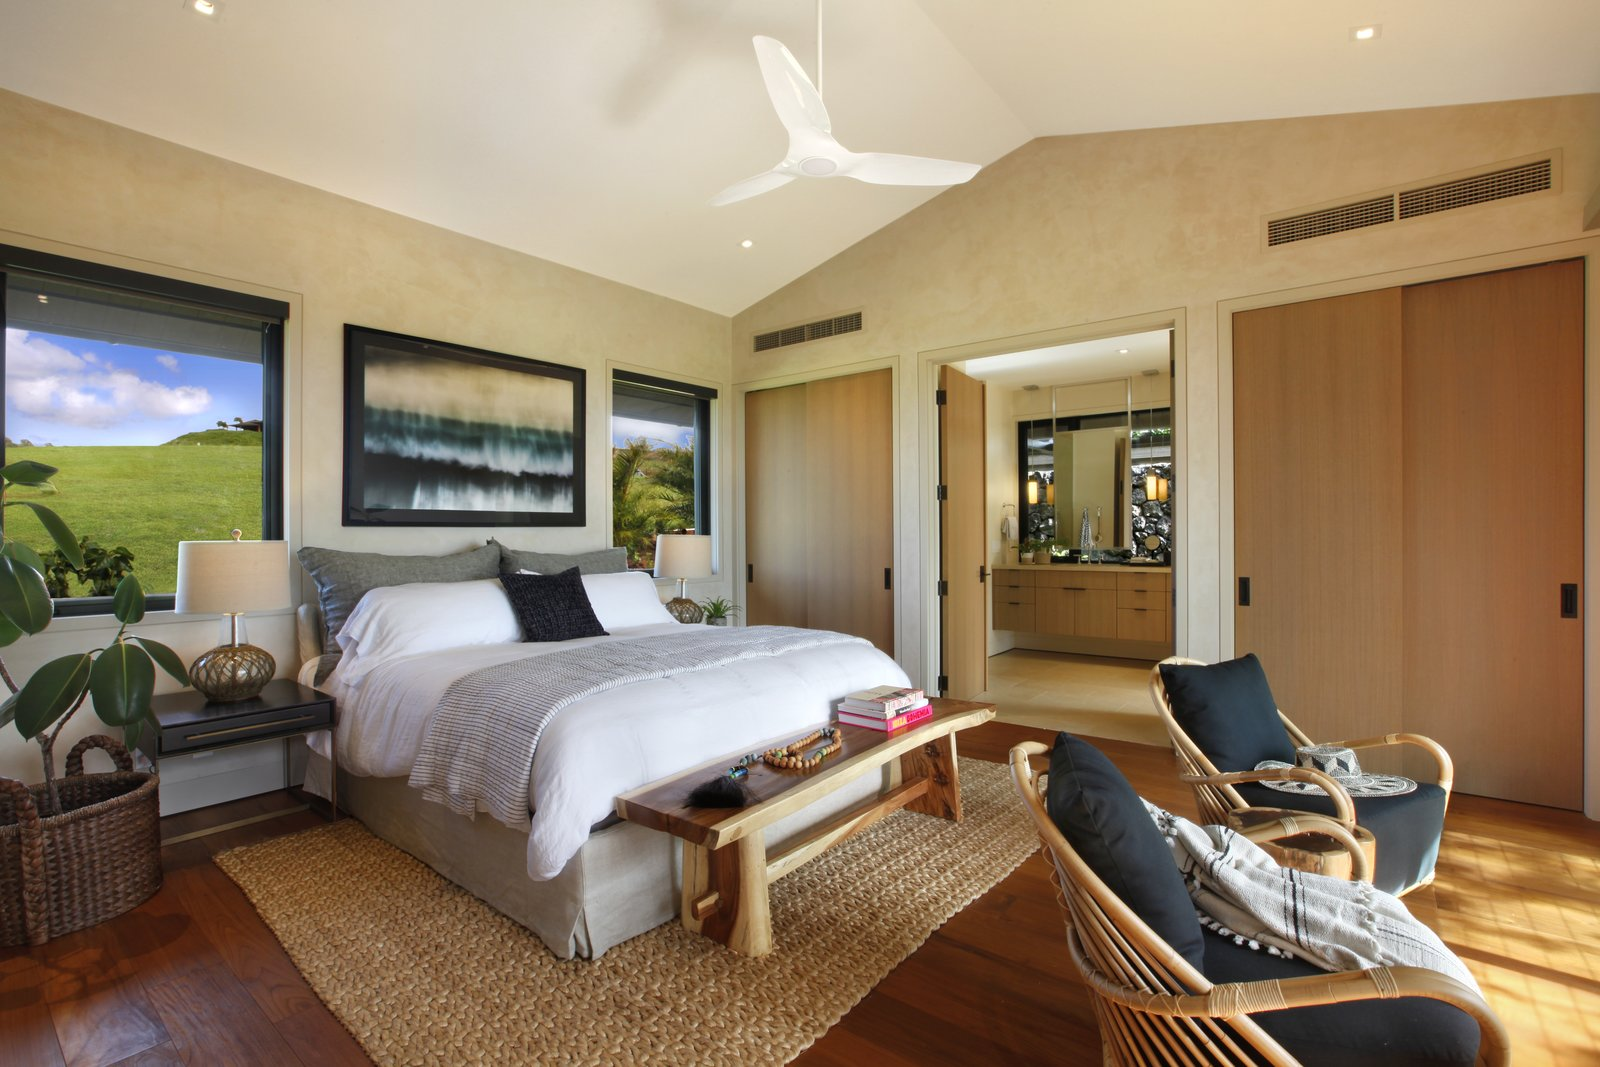 Bedroom, Bed, Bench, Medium Hardwood Floor, Ceiling Lighting, Chair, and Night Stands The bedroom features  Photo 5 of 14 in A Breezy Hawaiian Residence by Olson Kundig Hits the Market at $6.95M